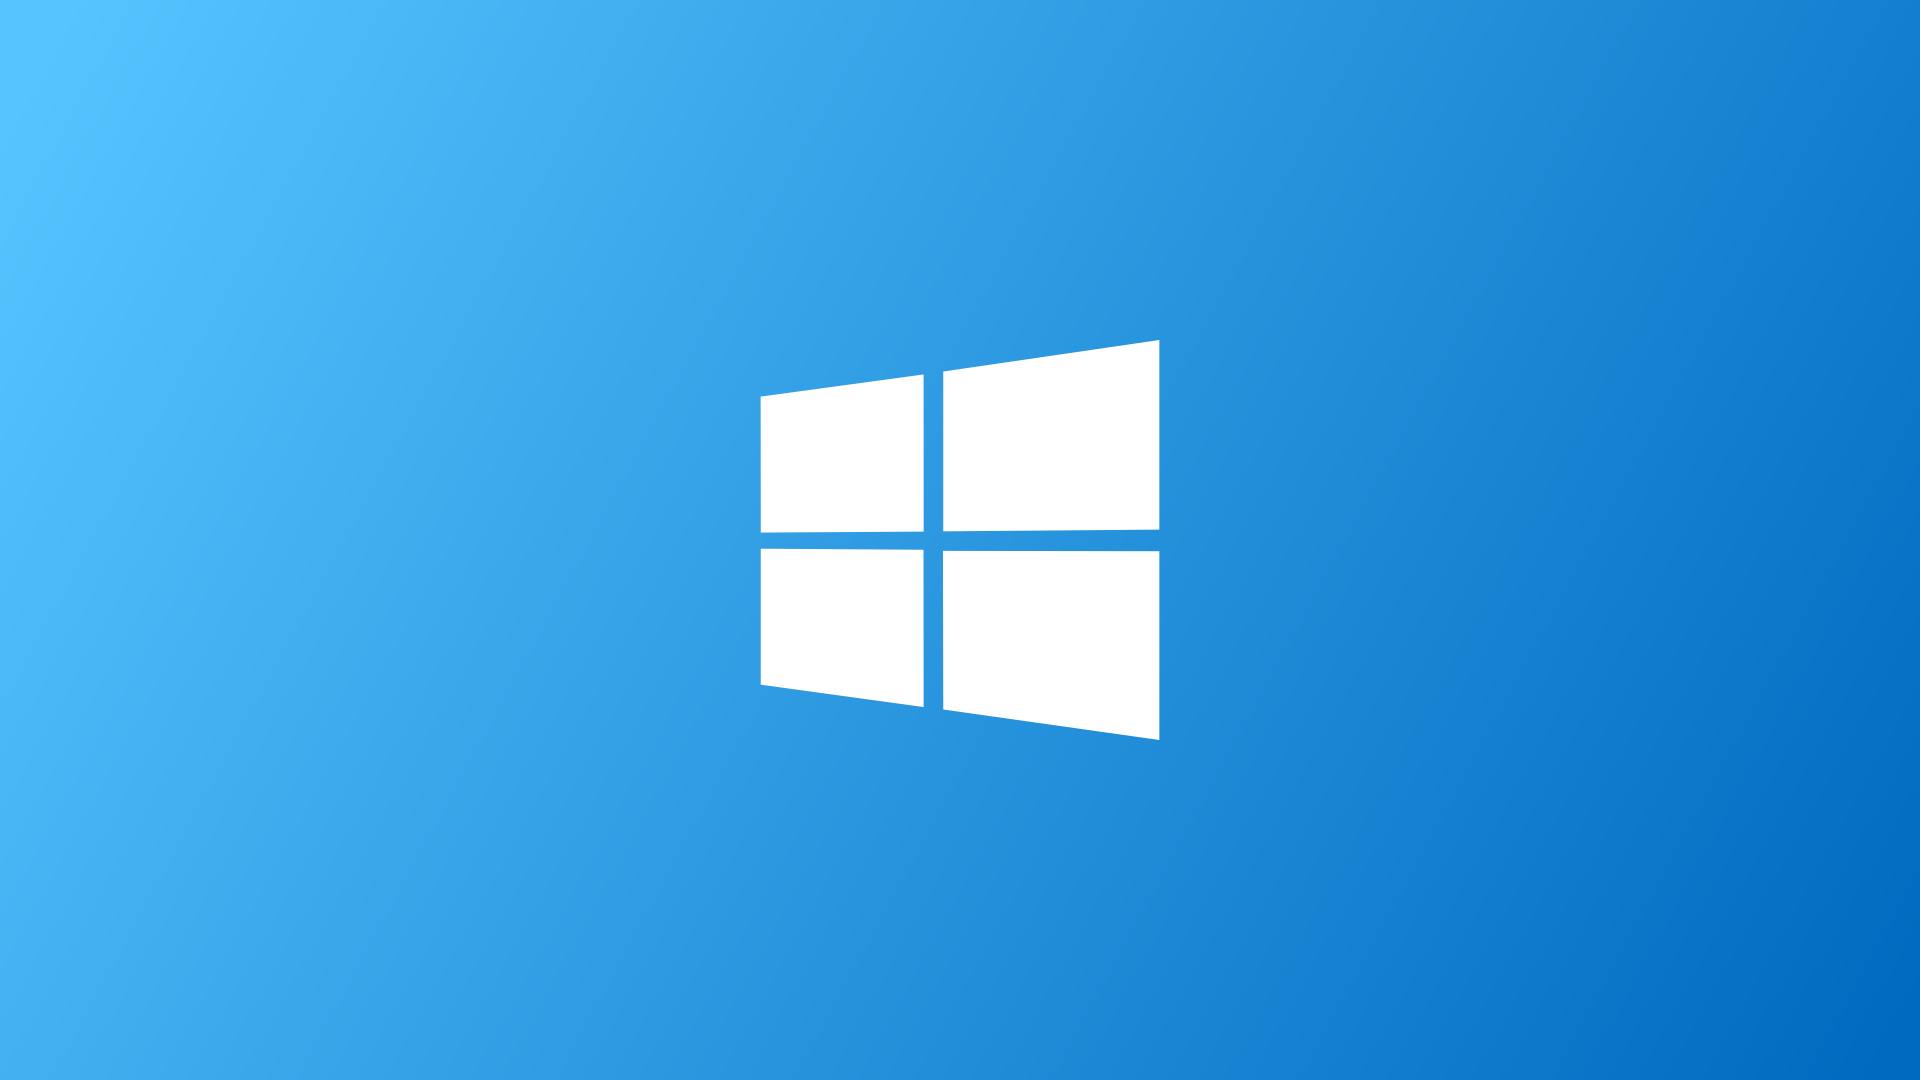 Windows 8 Wallpaper Simple Blue